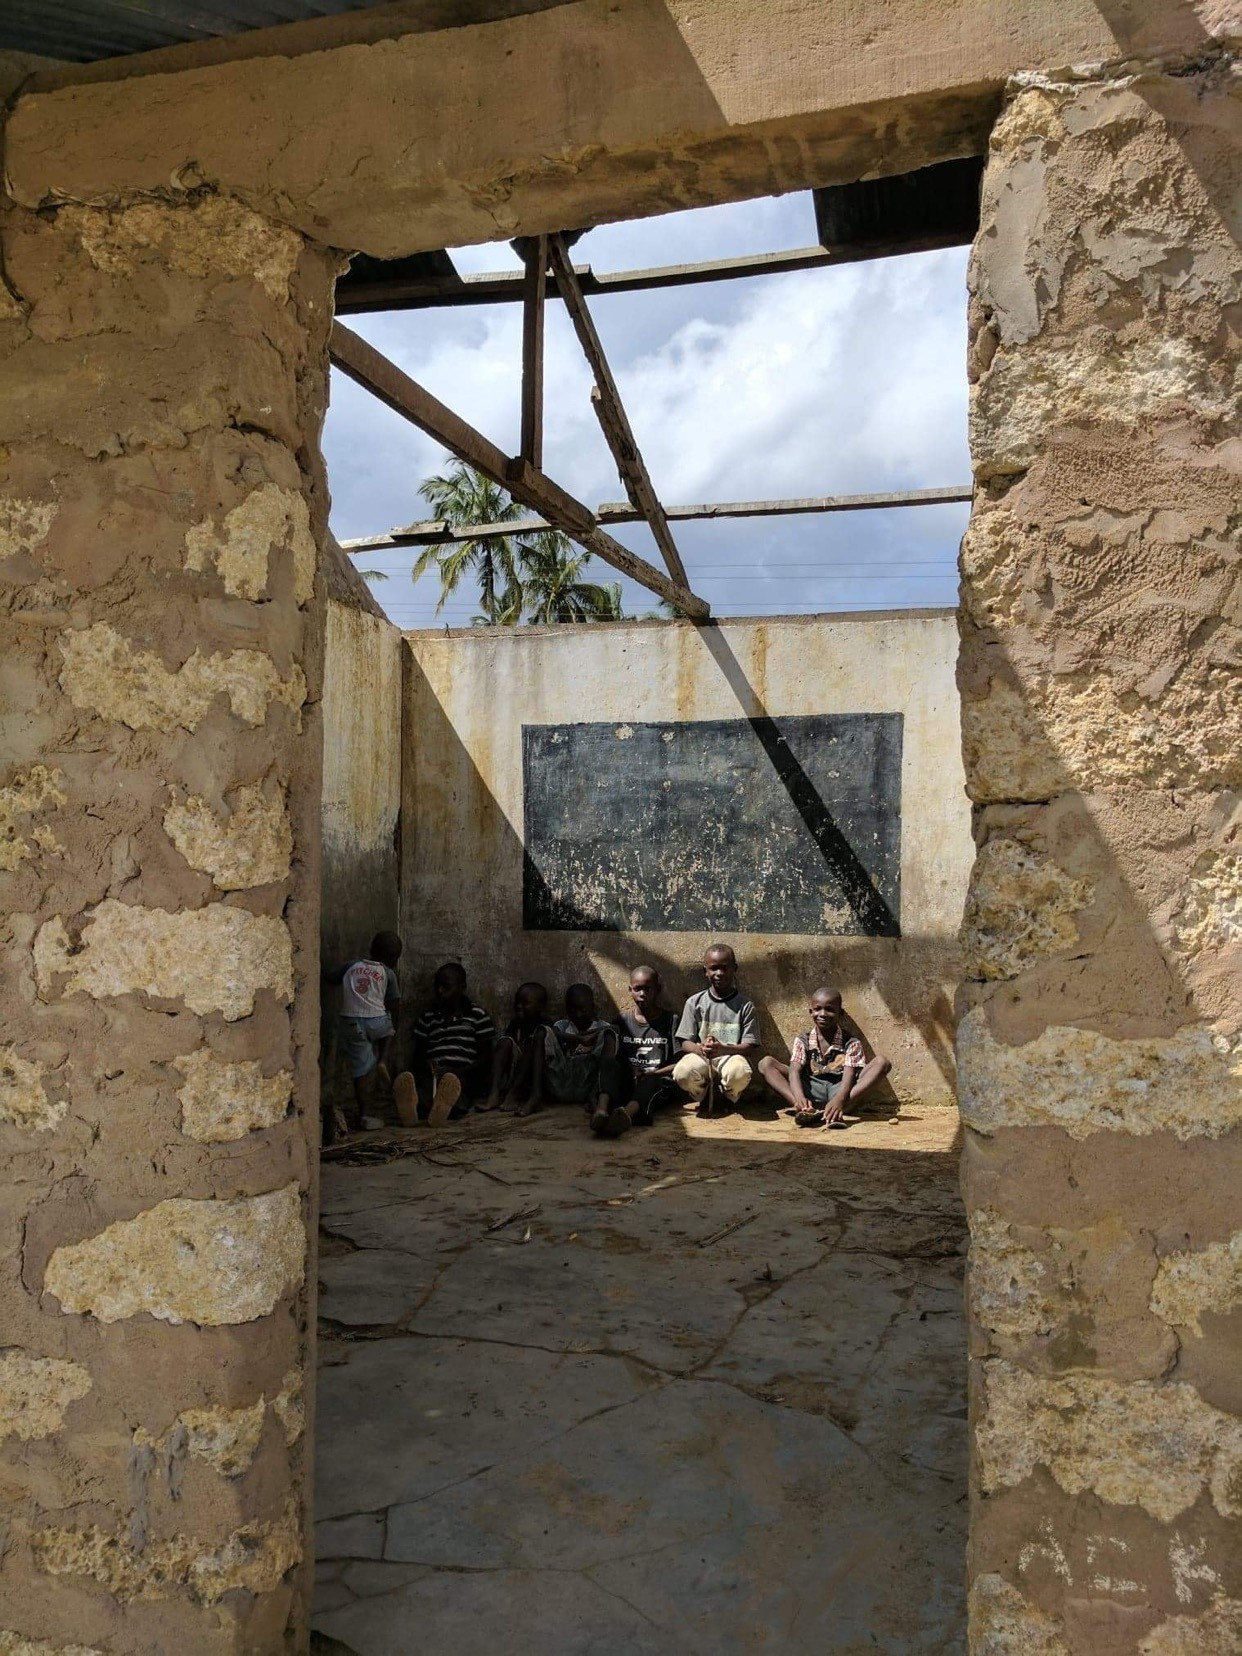 Kids from the Village of Lutsanga sitting in empty school.